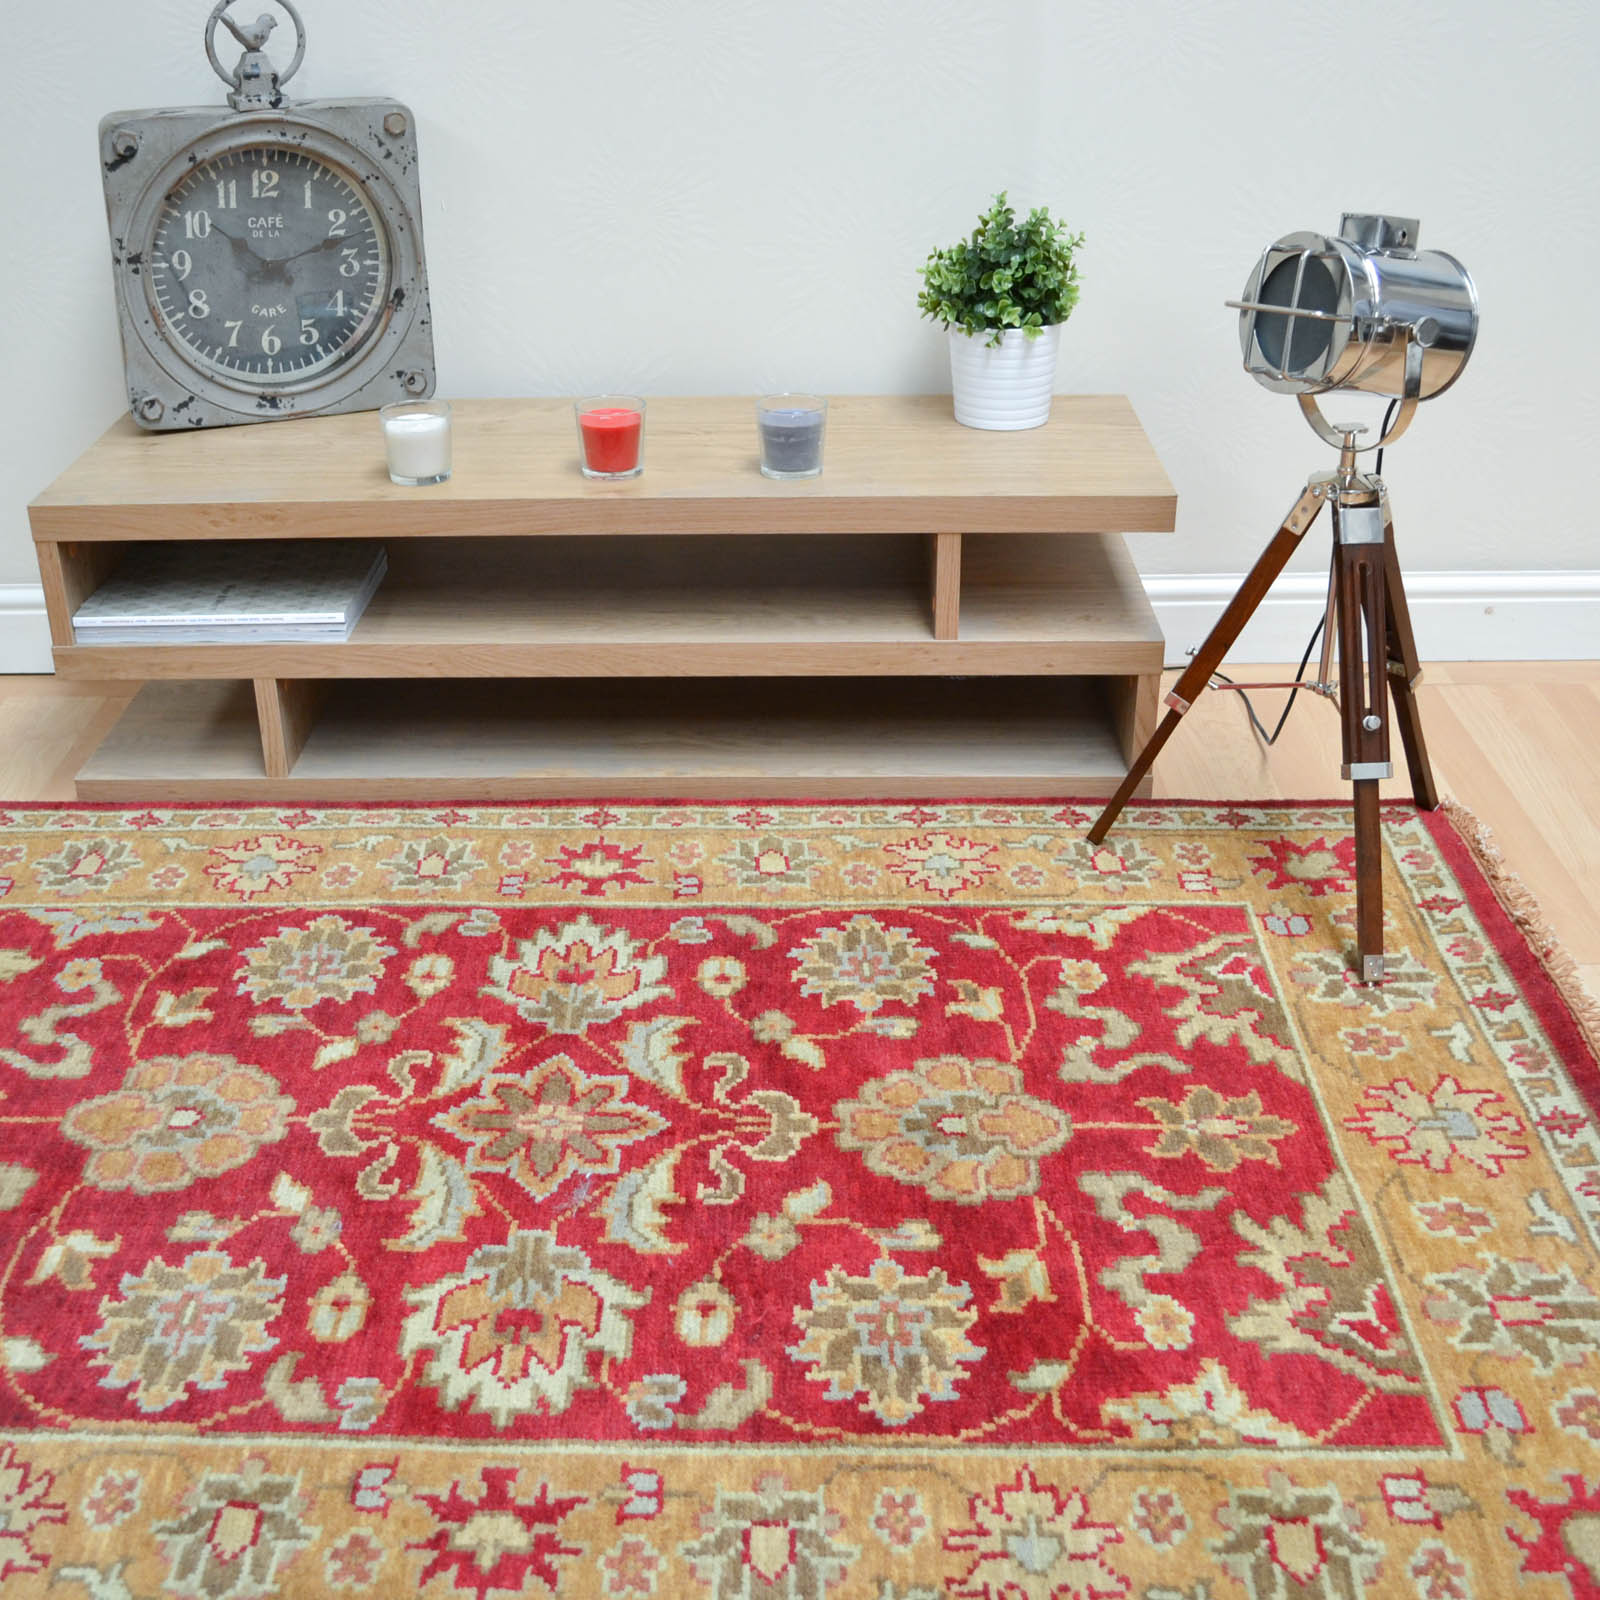 Taj Indian Agra Rugs - Hand Knotted Pure Wool in Red Gold